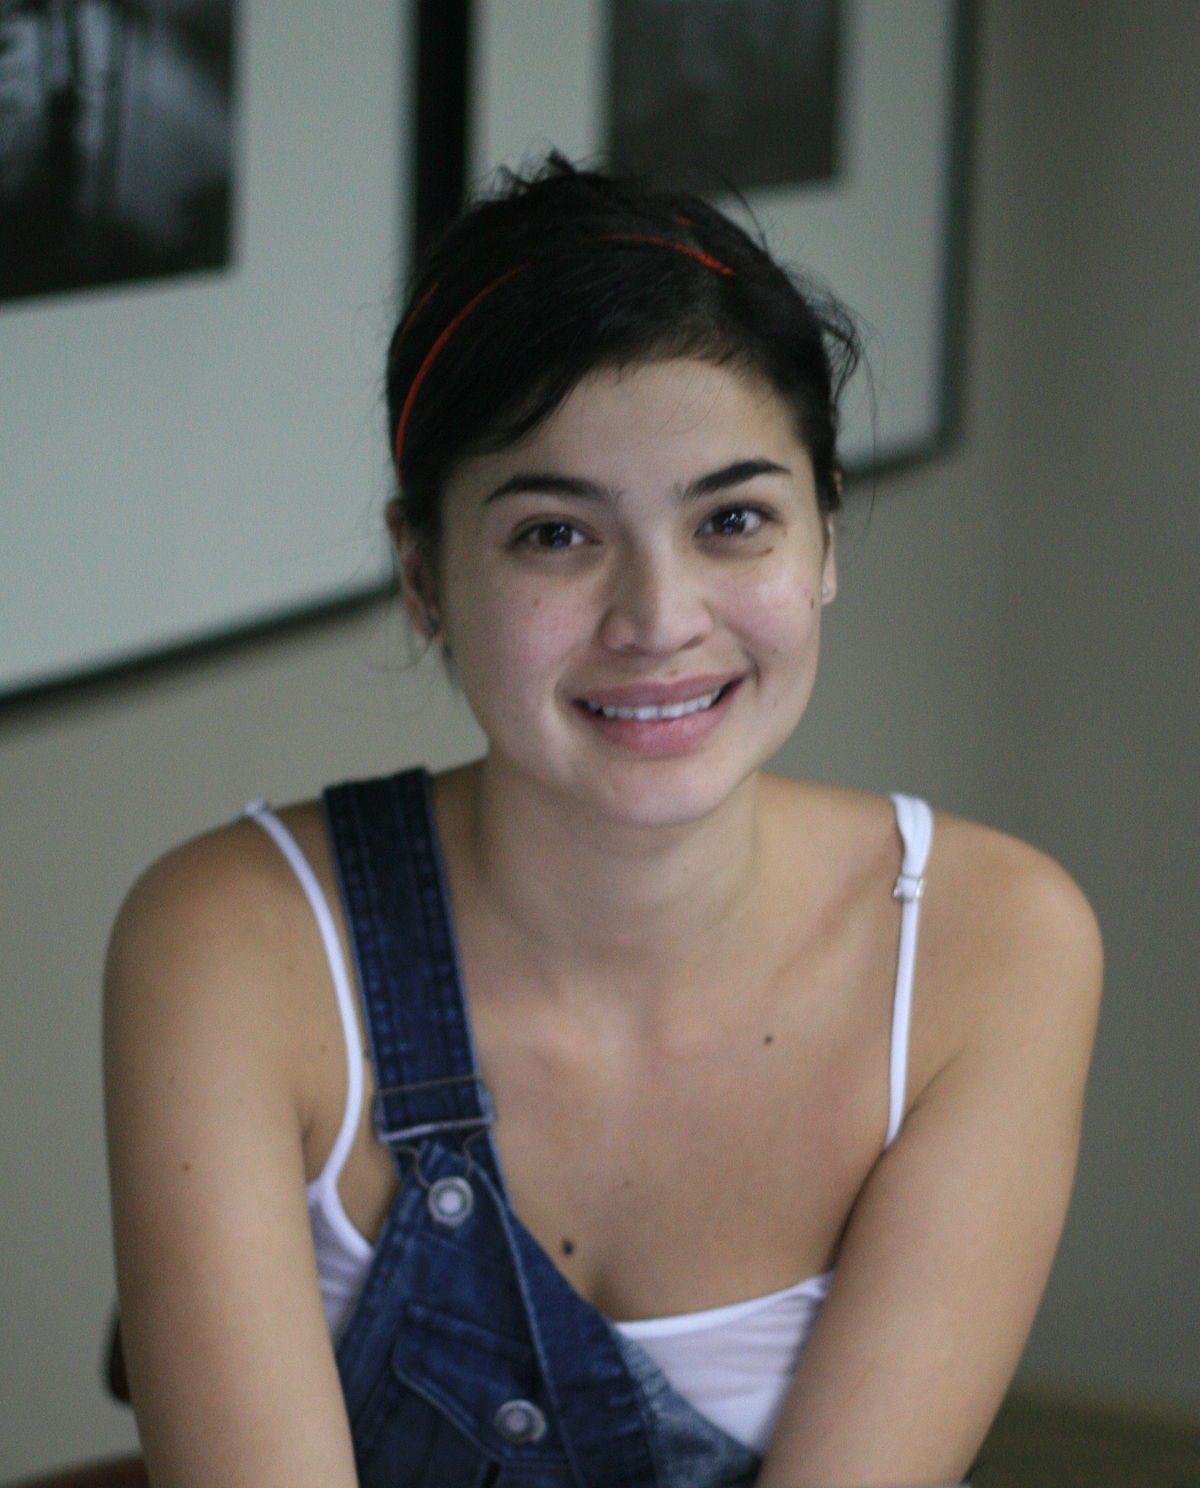 Anne curtis hot girl not